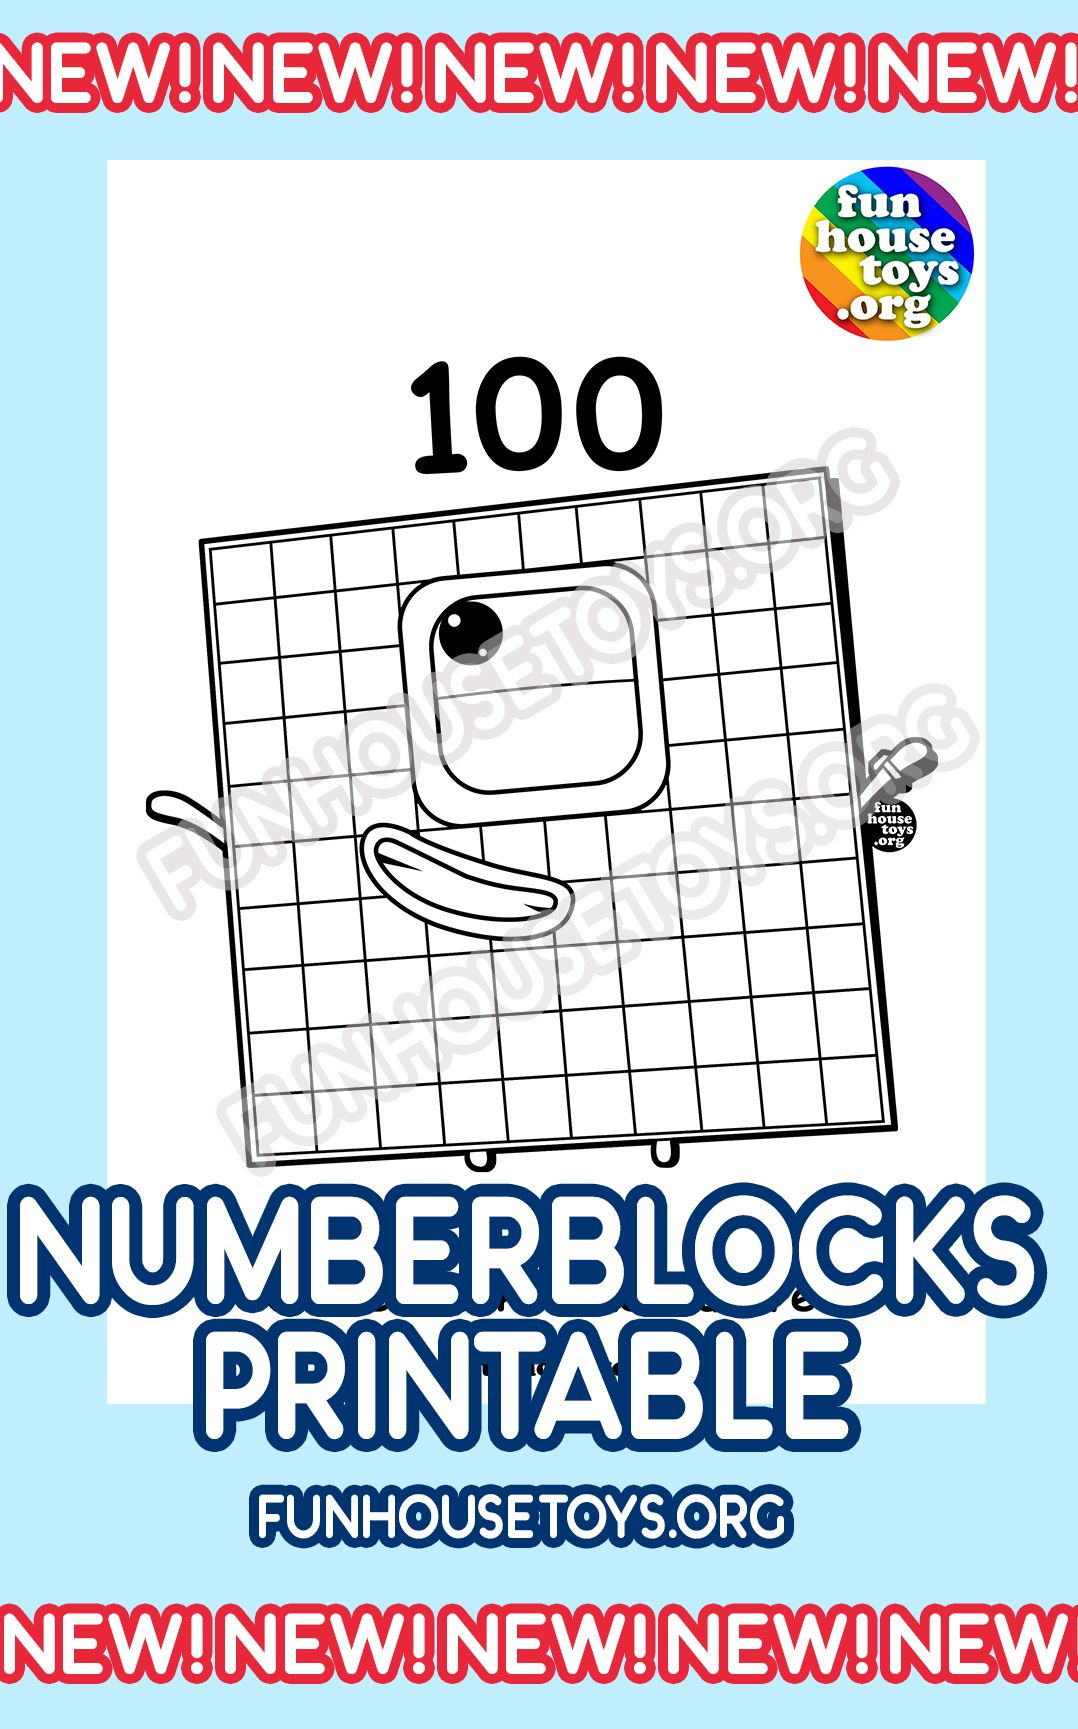 New 100 To 1000 Numberblocks Coloring Pages In 2020 Fun Printables For Kids Printable Coloring Pages Coloring Pages